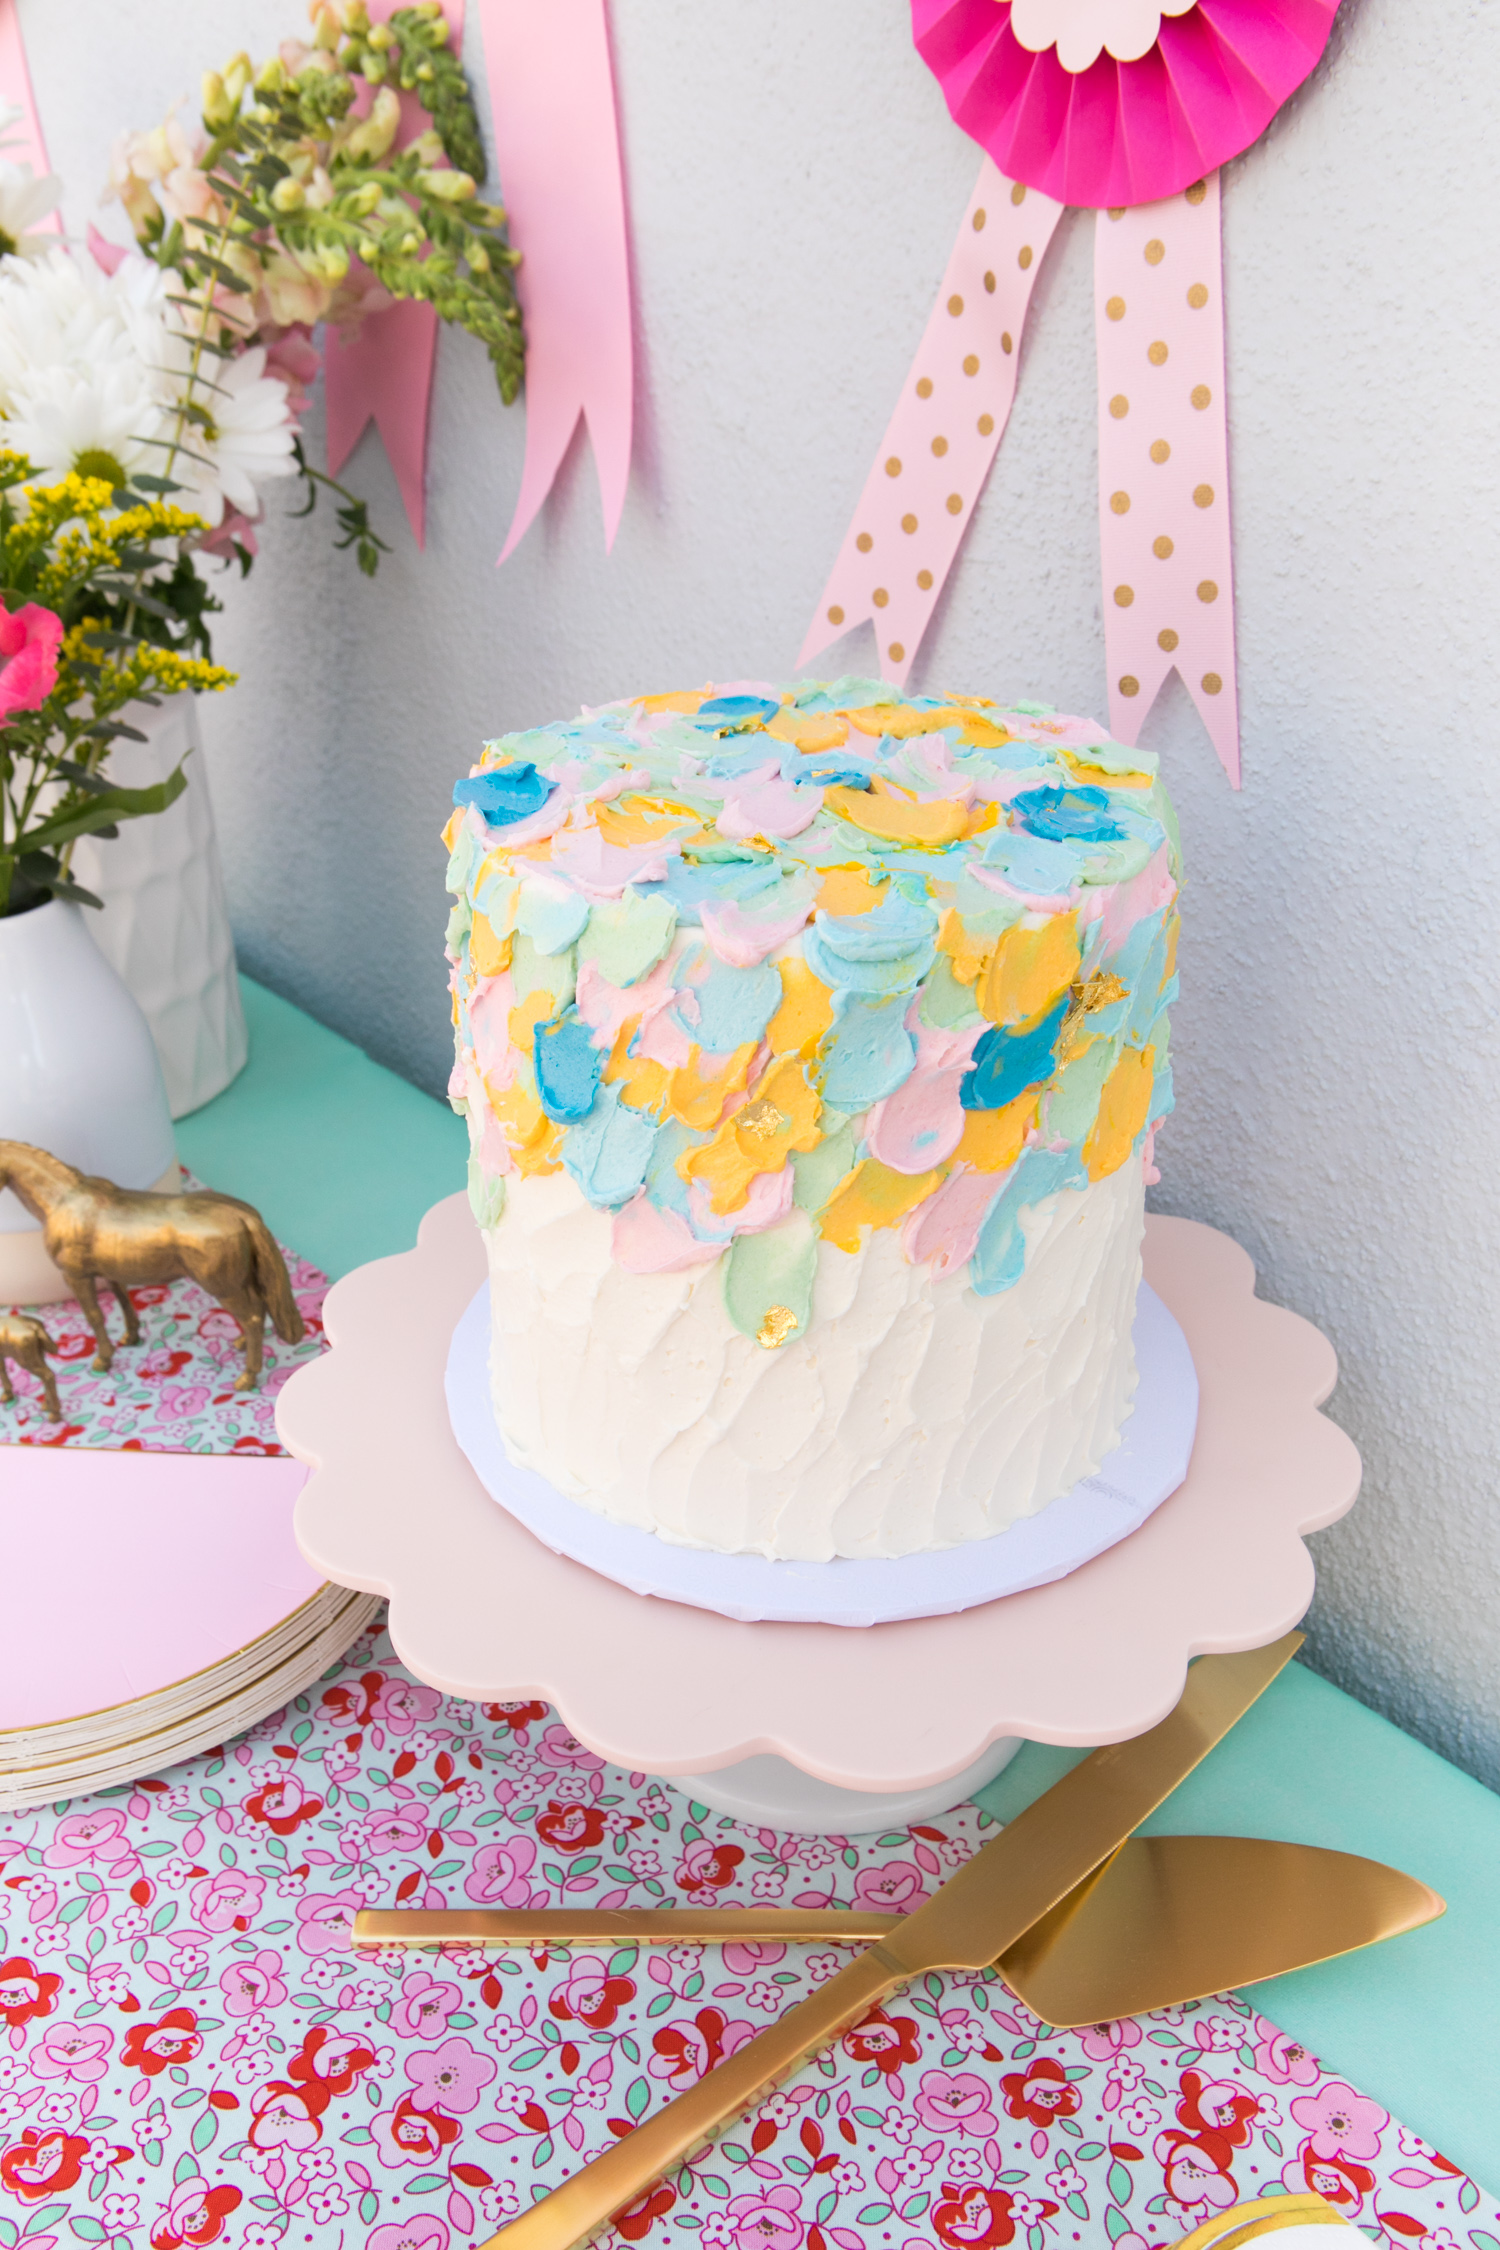 A Beautiful Multi Colored Pastel And Gold Leaf Red Velvet Cake